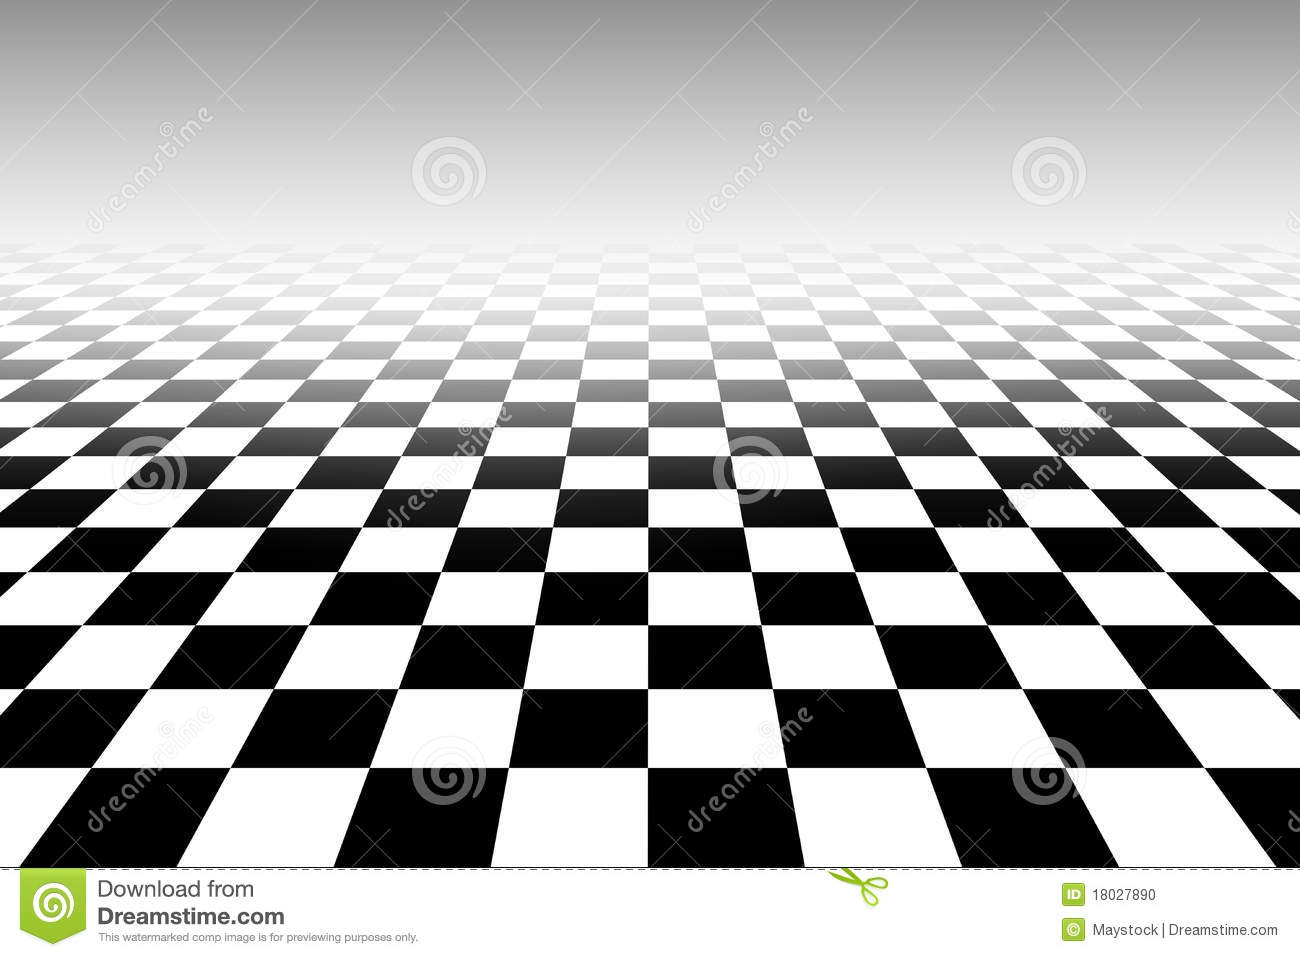 Tridimensional chessboard black and white pattern stock photo image 18027890 - Tri dimensional chess board ...